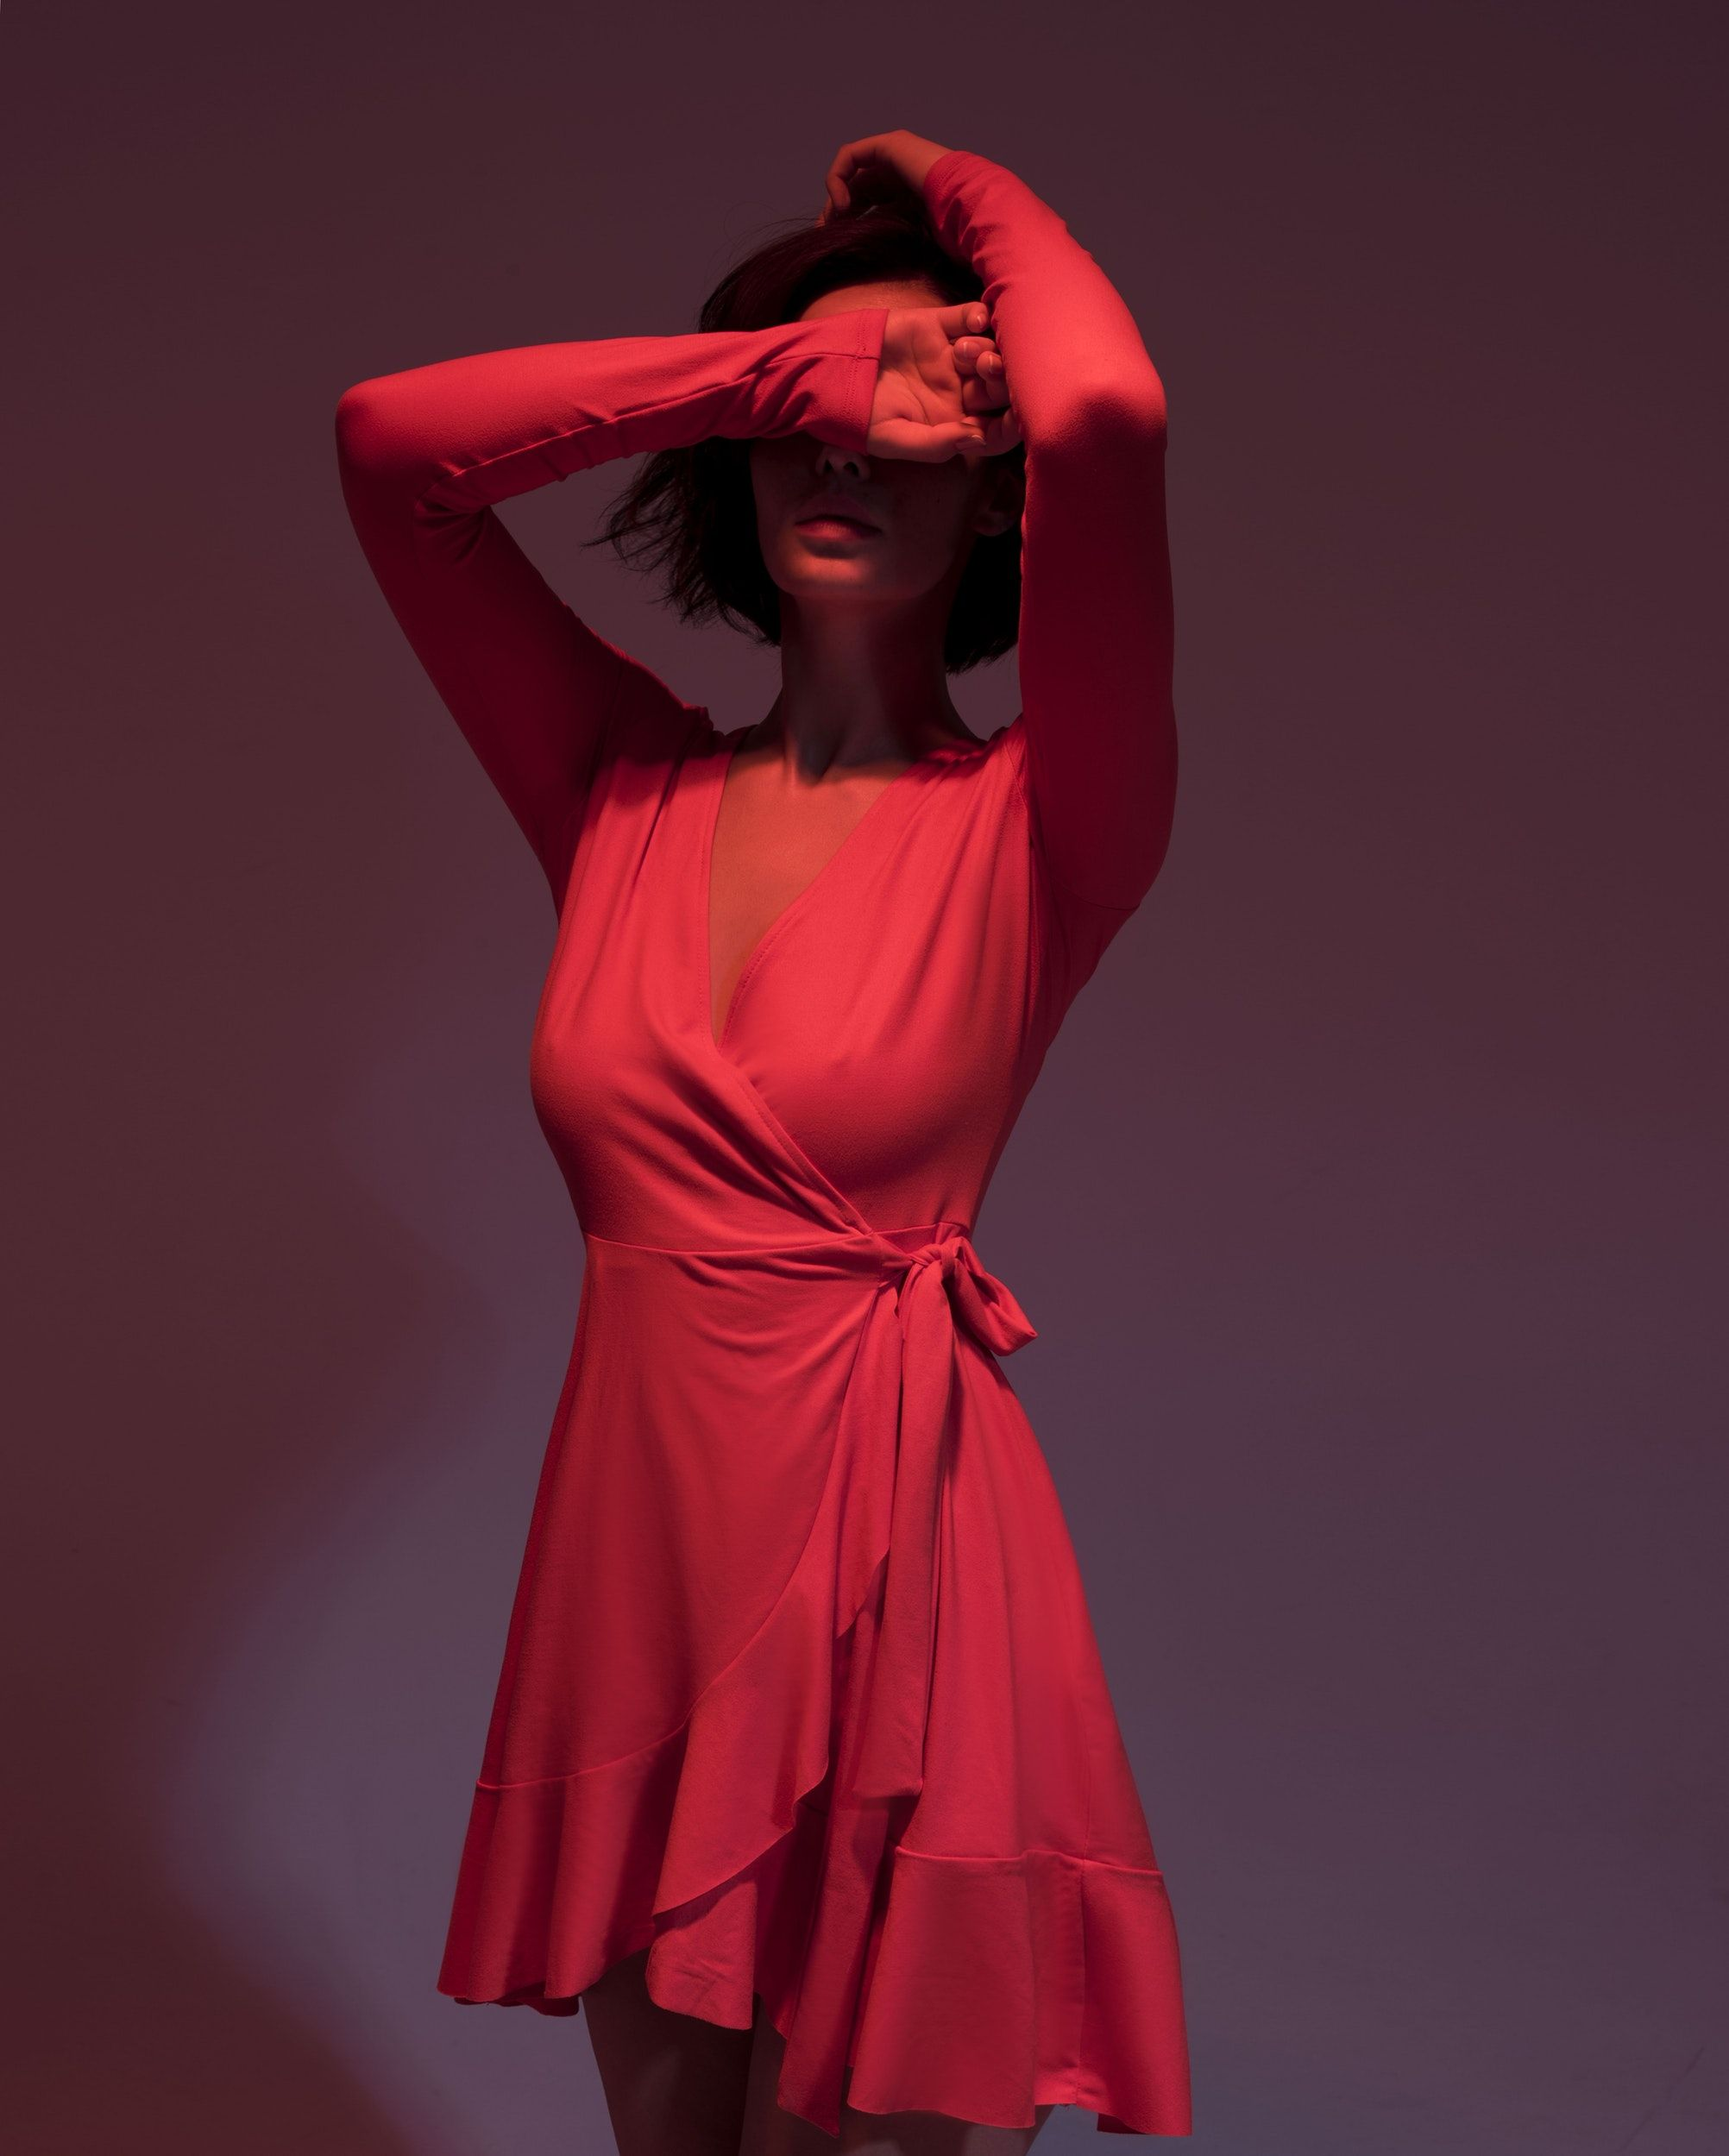 Dress Clothing Apparel And Person Hd Photo By Ospan Ali Ospanali On Unsplash Neon Fashion Fashion Red Dress Short